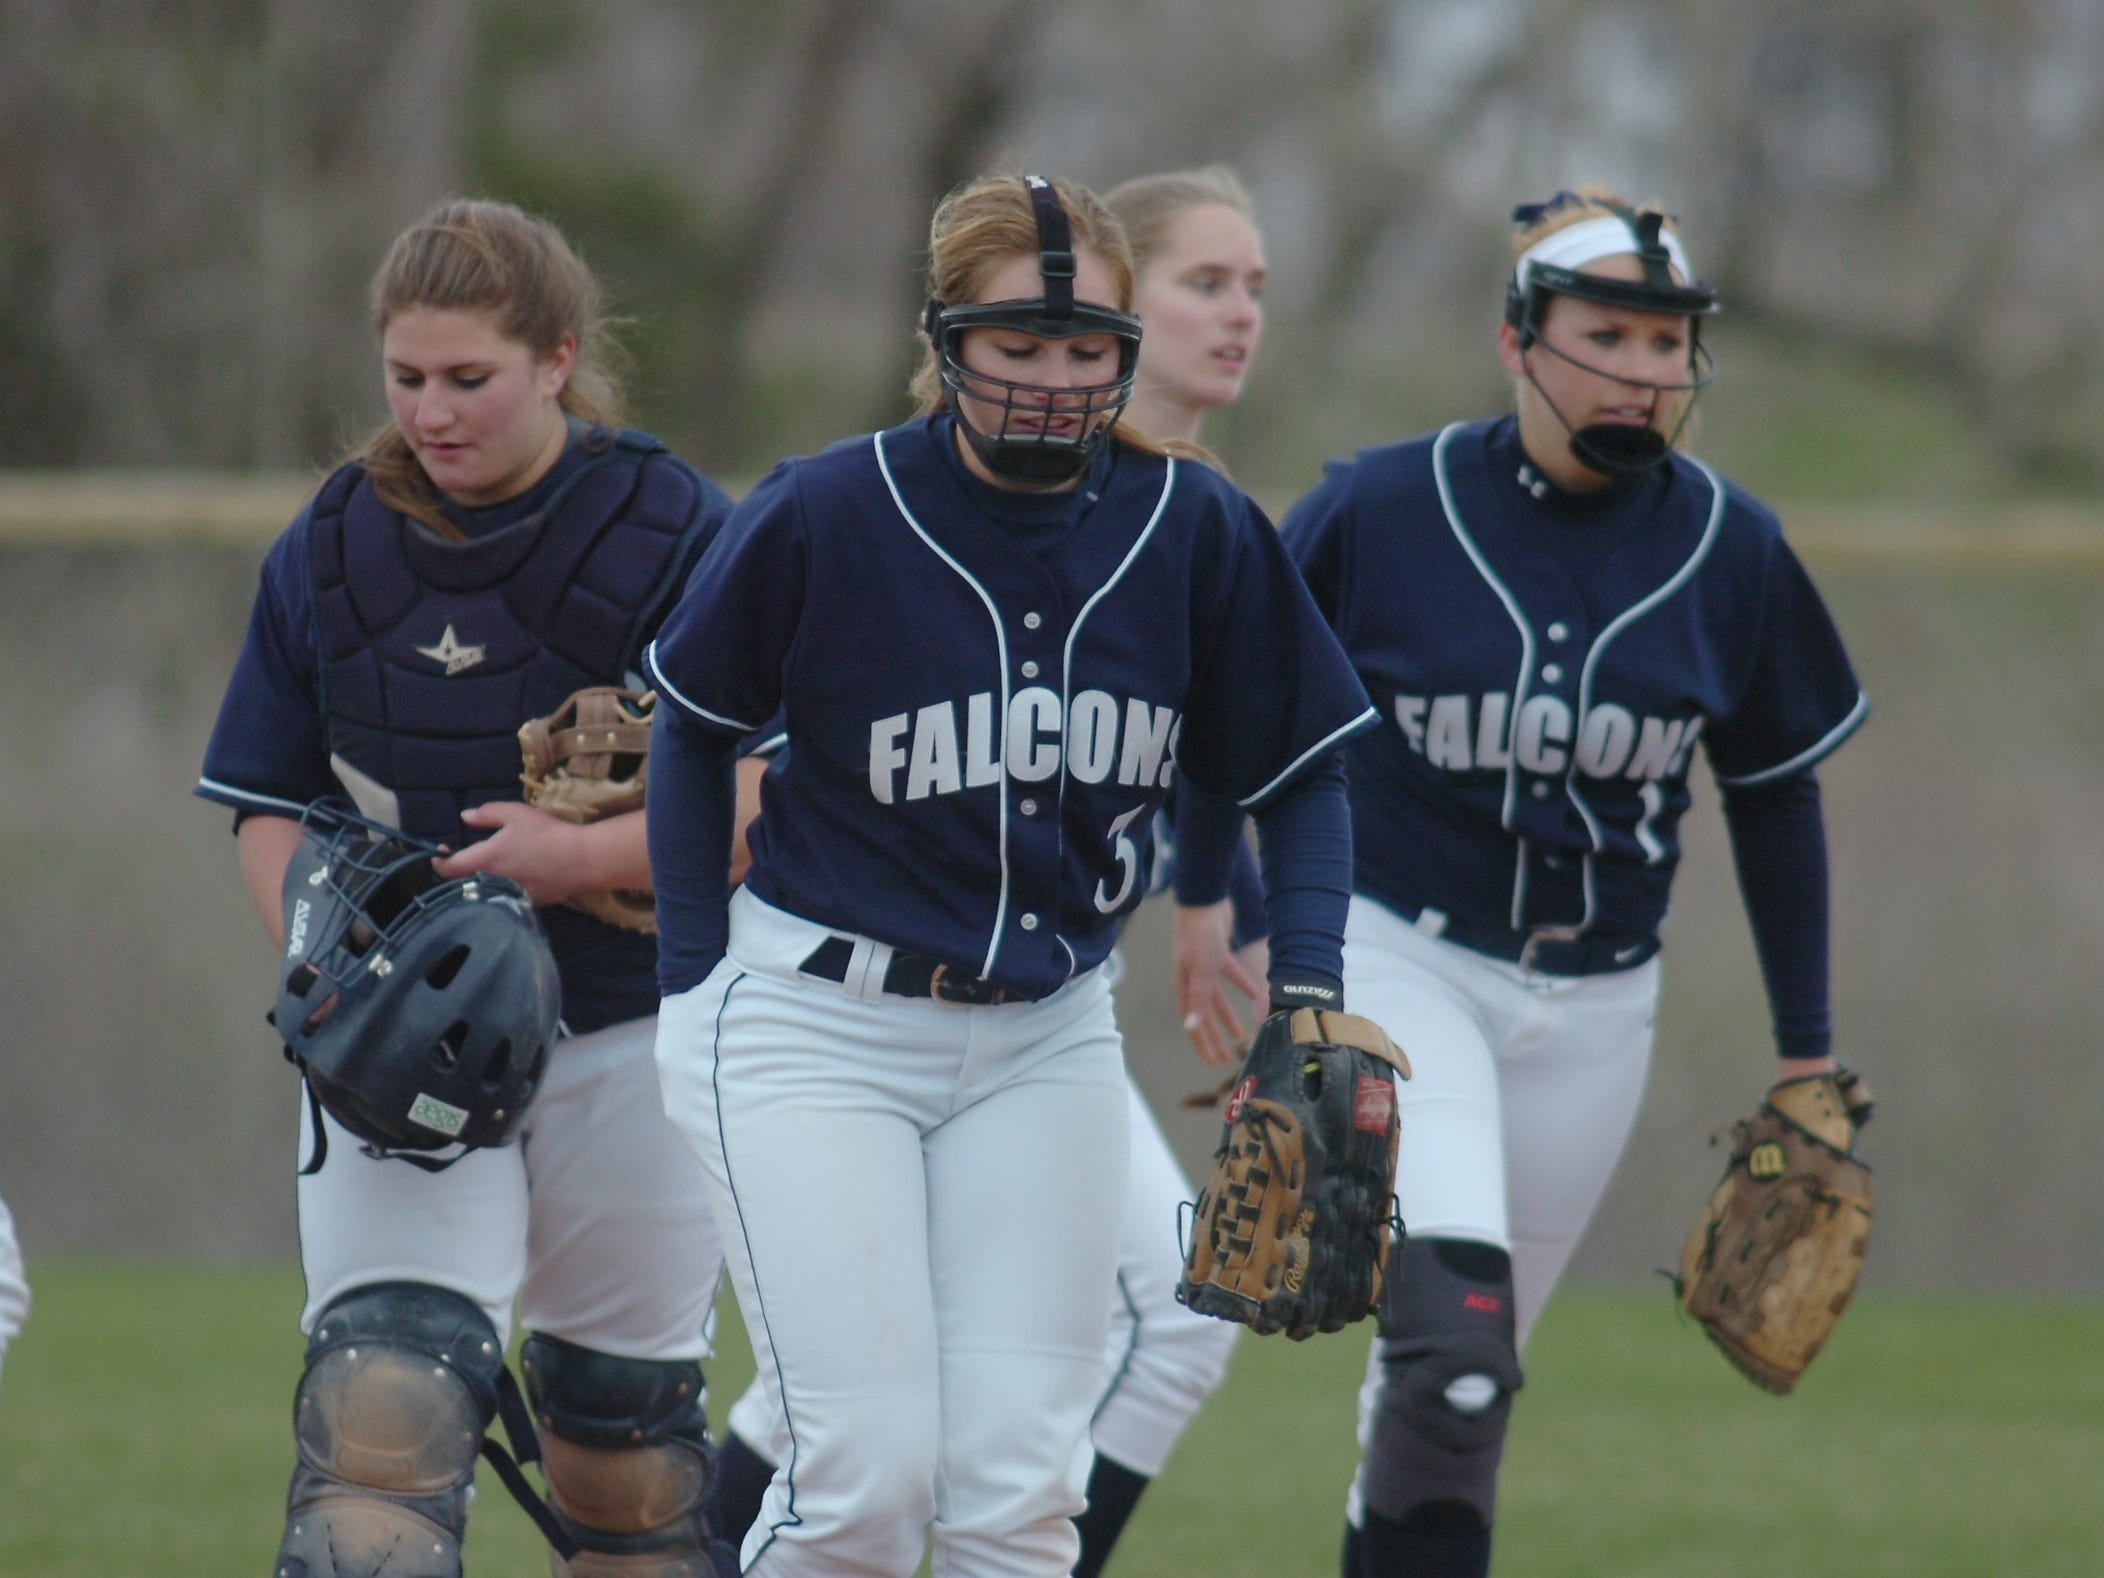 Farmington sophomore Danielle Petras (left) and senior infielders Alexa Flourre (center) and Alli Gambill leave the field at the end of a half inning.